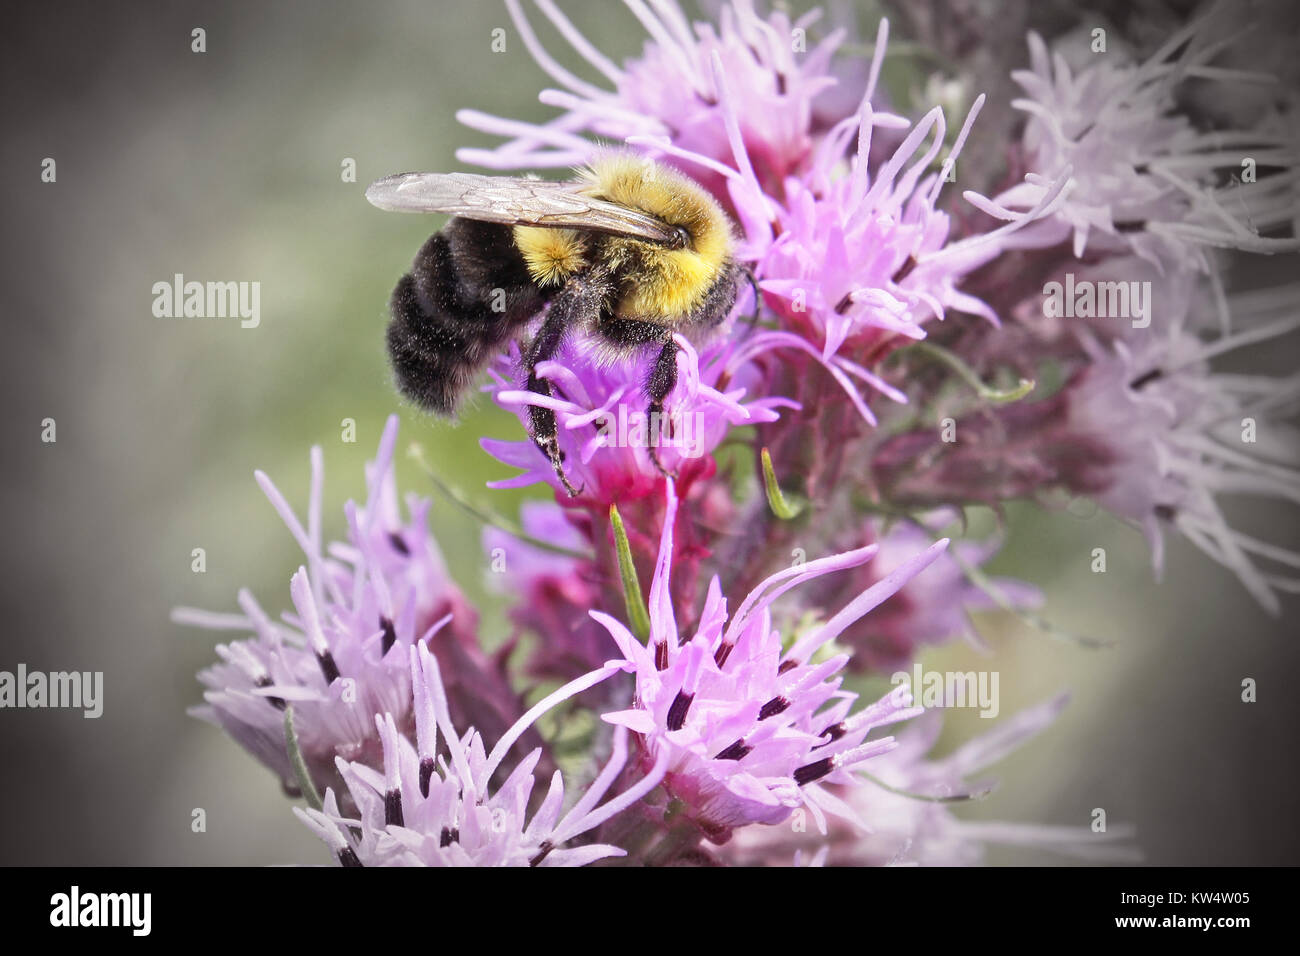 Bumble Bee taking nectar and pollen from a Wildflower Stock Photo